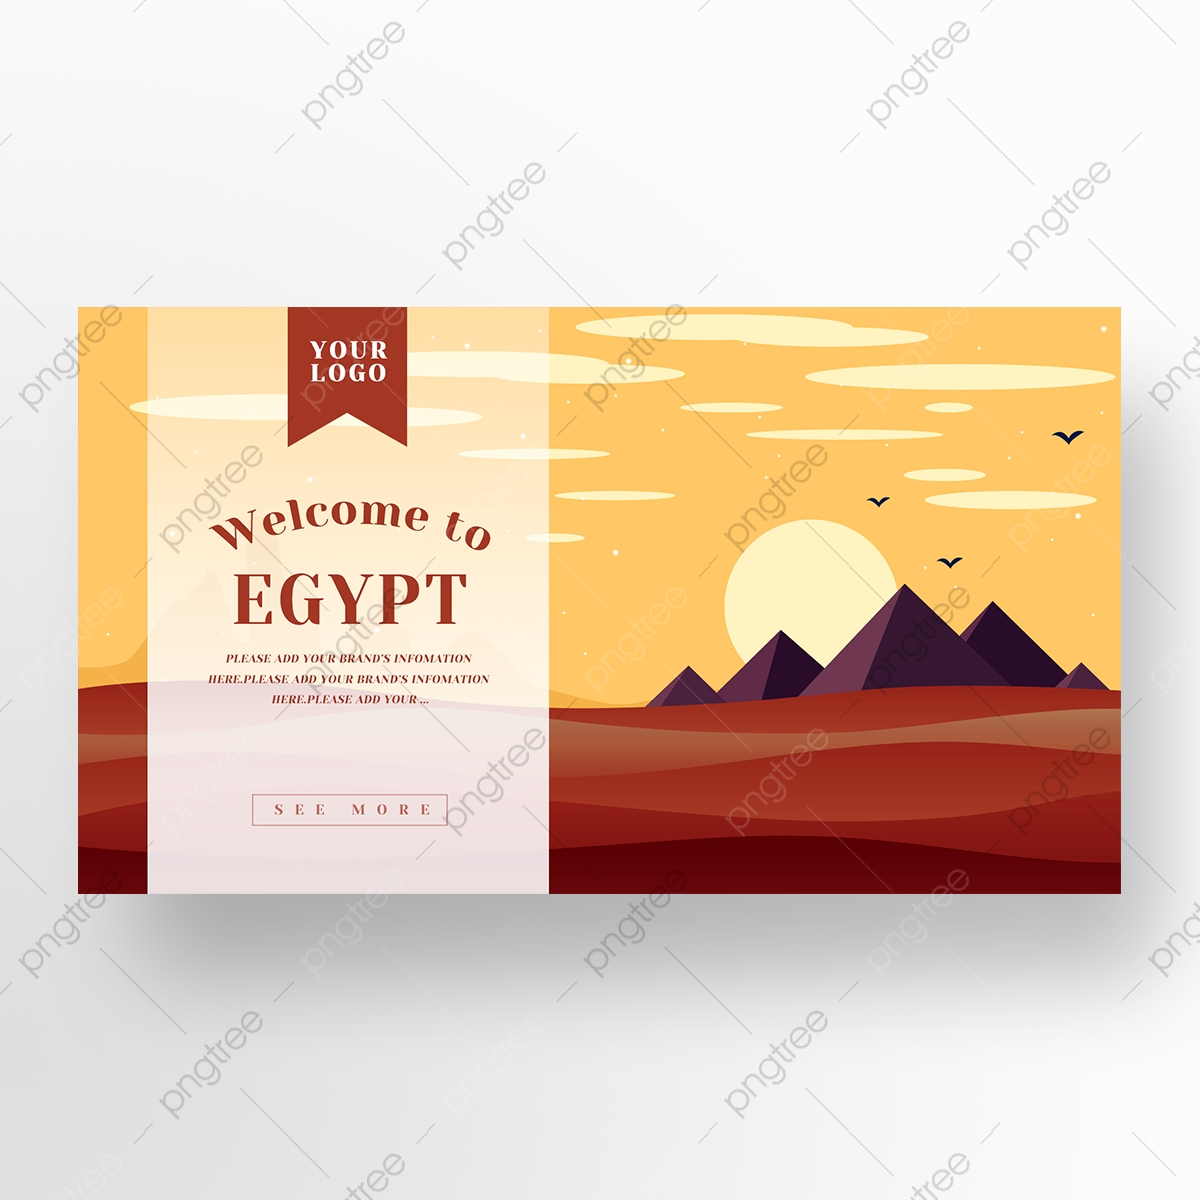 Egypt Tourism Png Images Vector And Psd Files Free Download On Pngtree